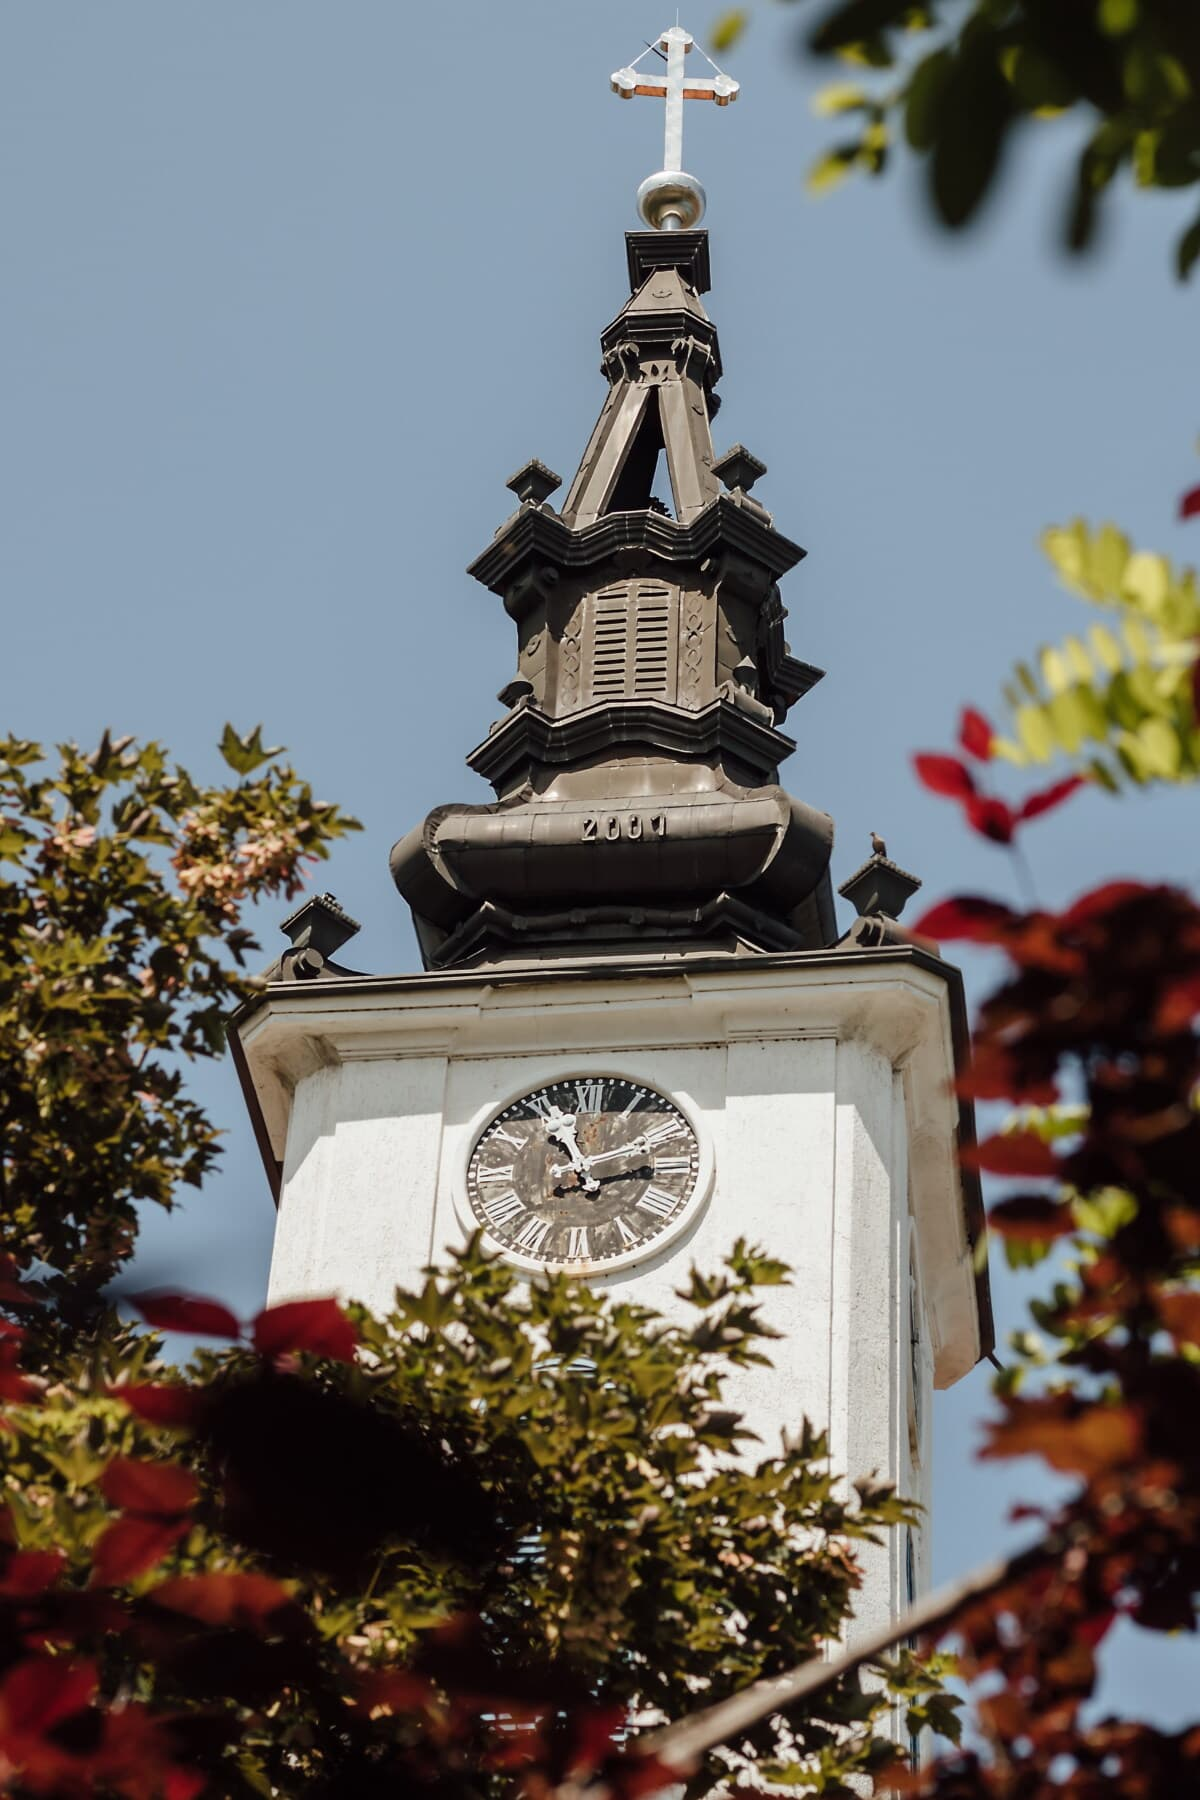 church tower, silver, cross, architectural style, baroque, tower, church, building, religion, architecture